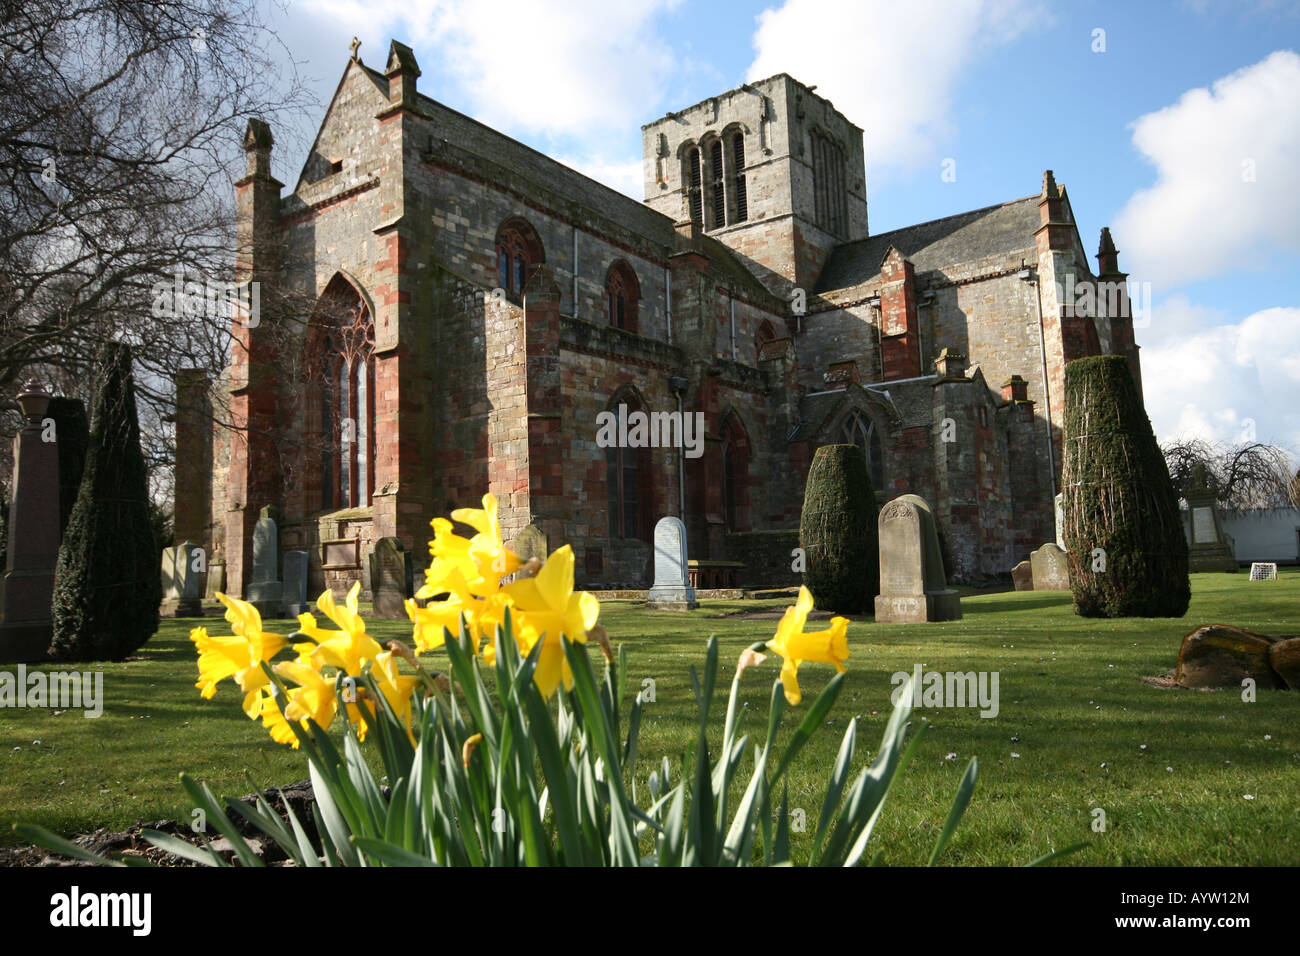 St Mary's Church Haddington East Lothian - Stock Image